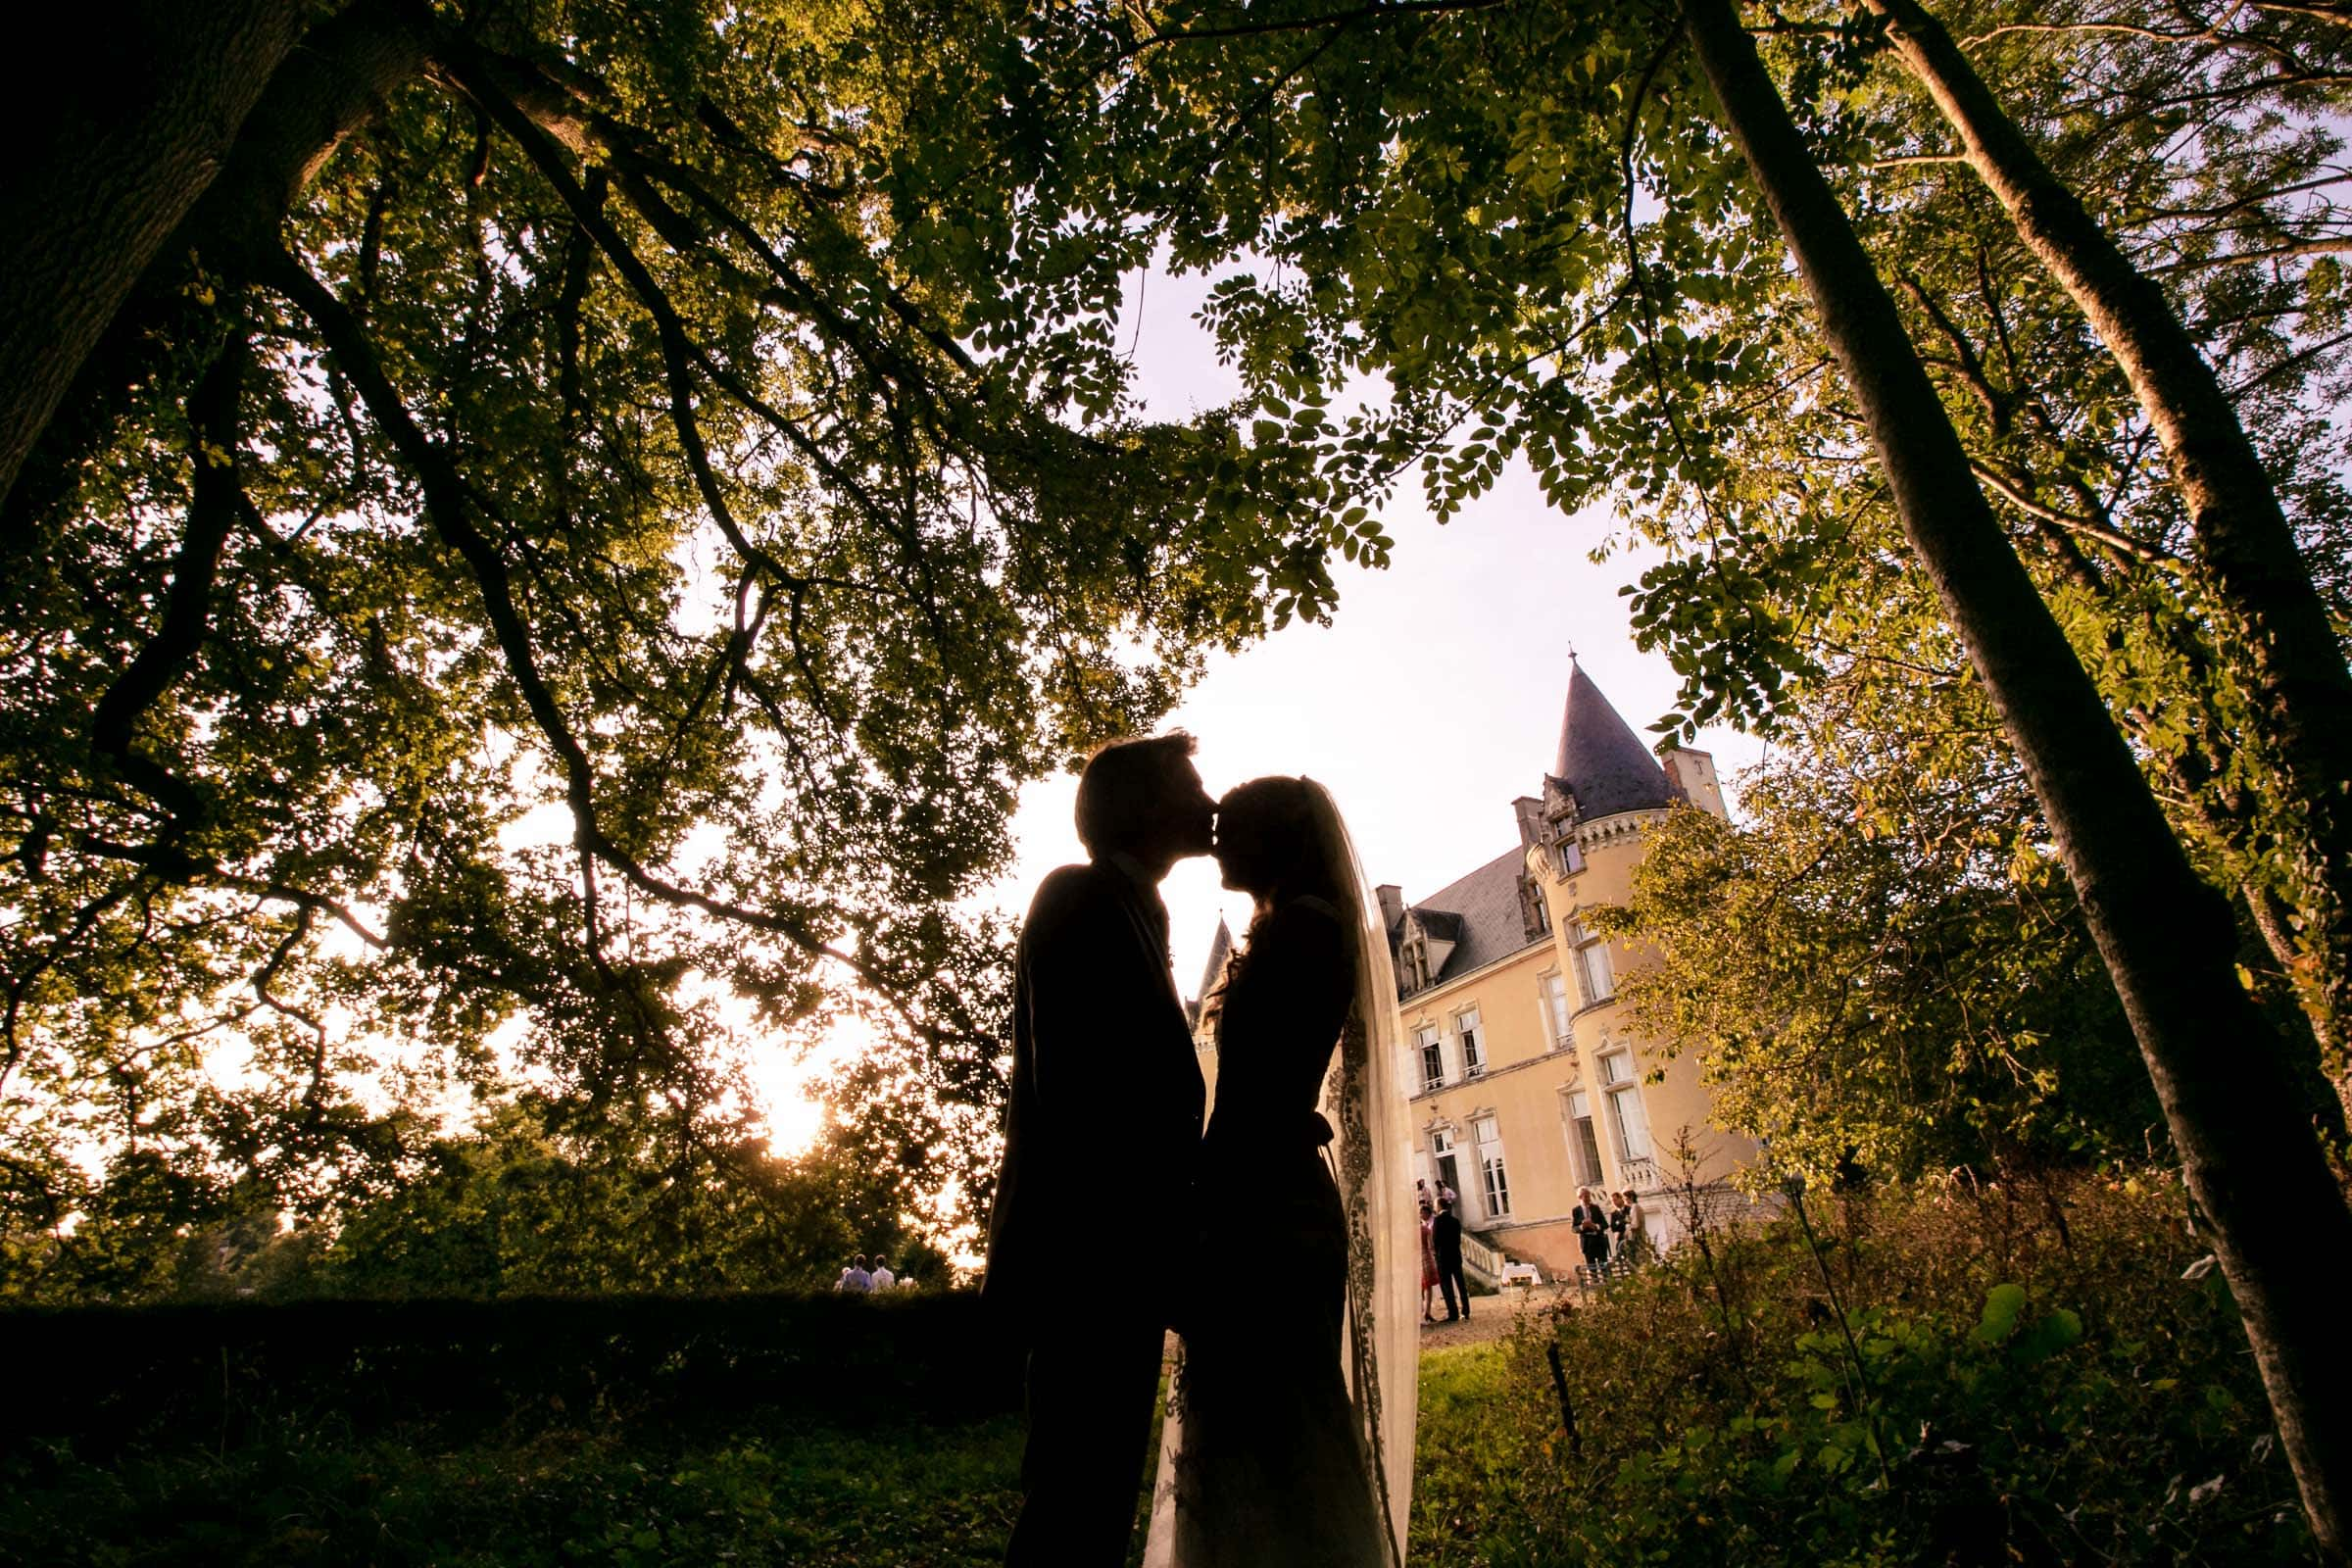 Silhouette of a bride and groom during a French Chateau wedding in Normandy, France